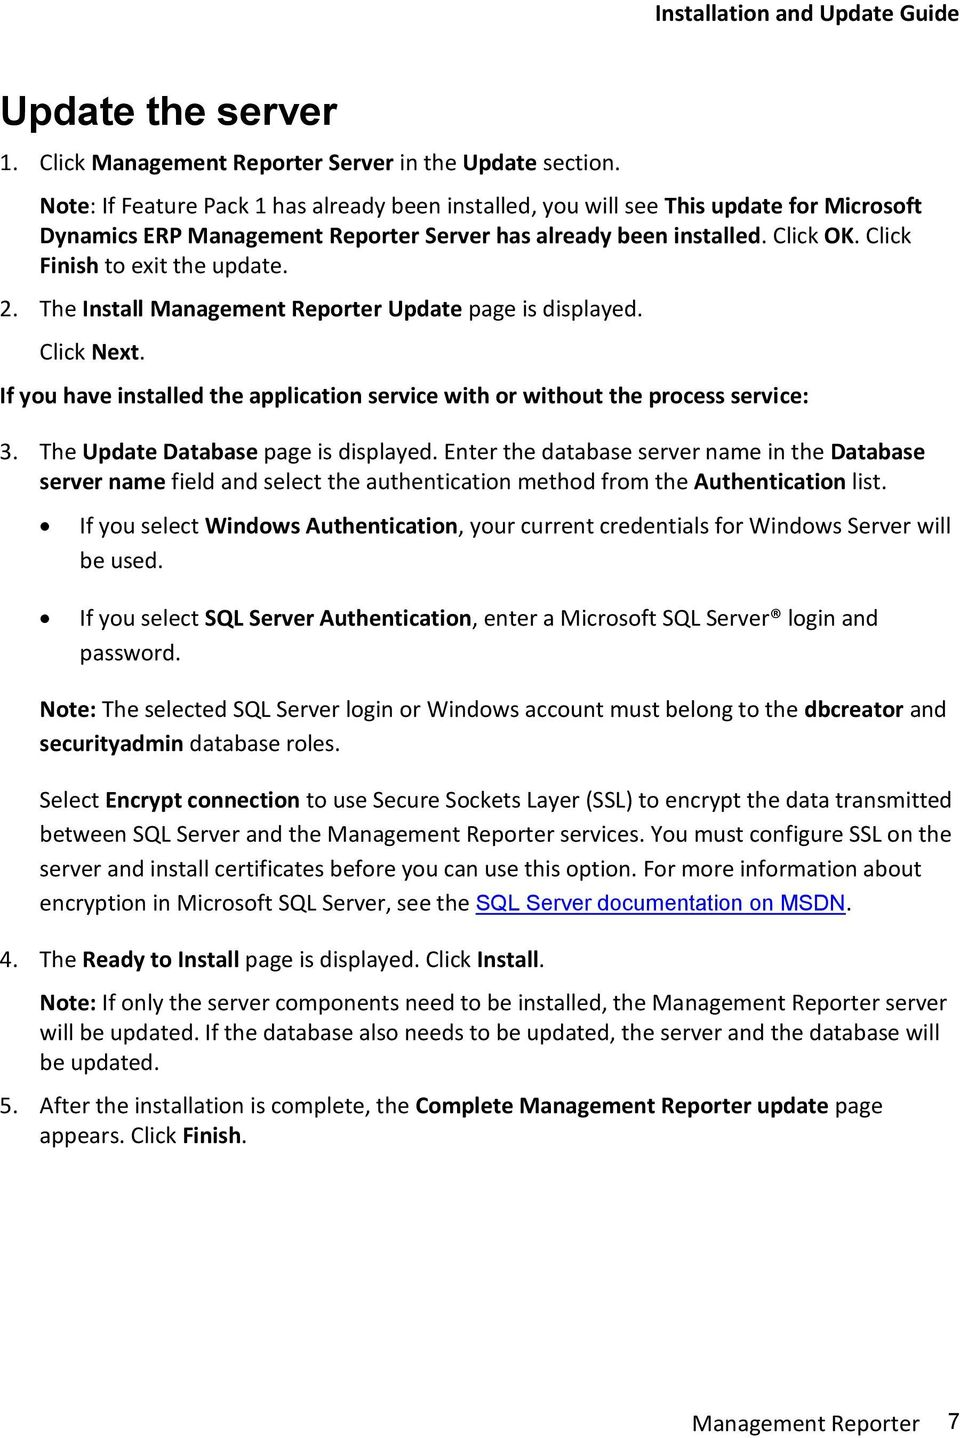 Click Finish to exit the update. 2. The Install Management Reporter Update page is displayed. Click Next. If you have installed the application service with or without the process service: 3.